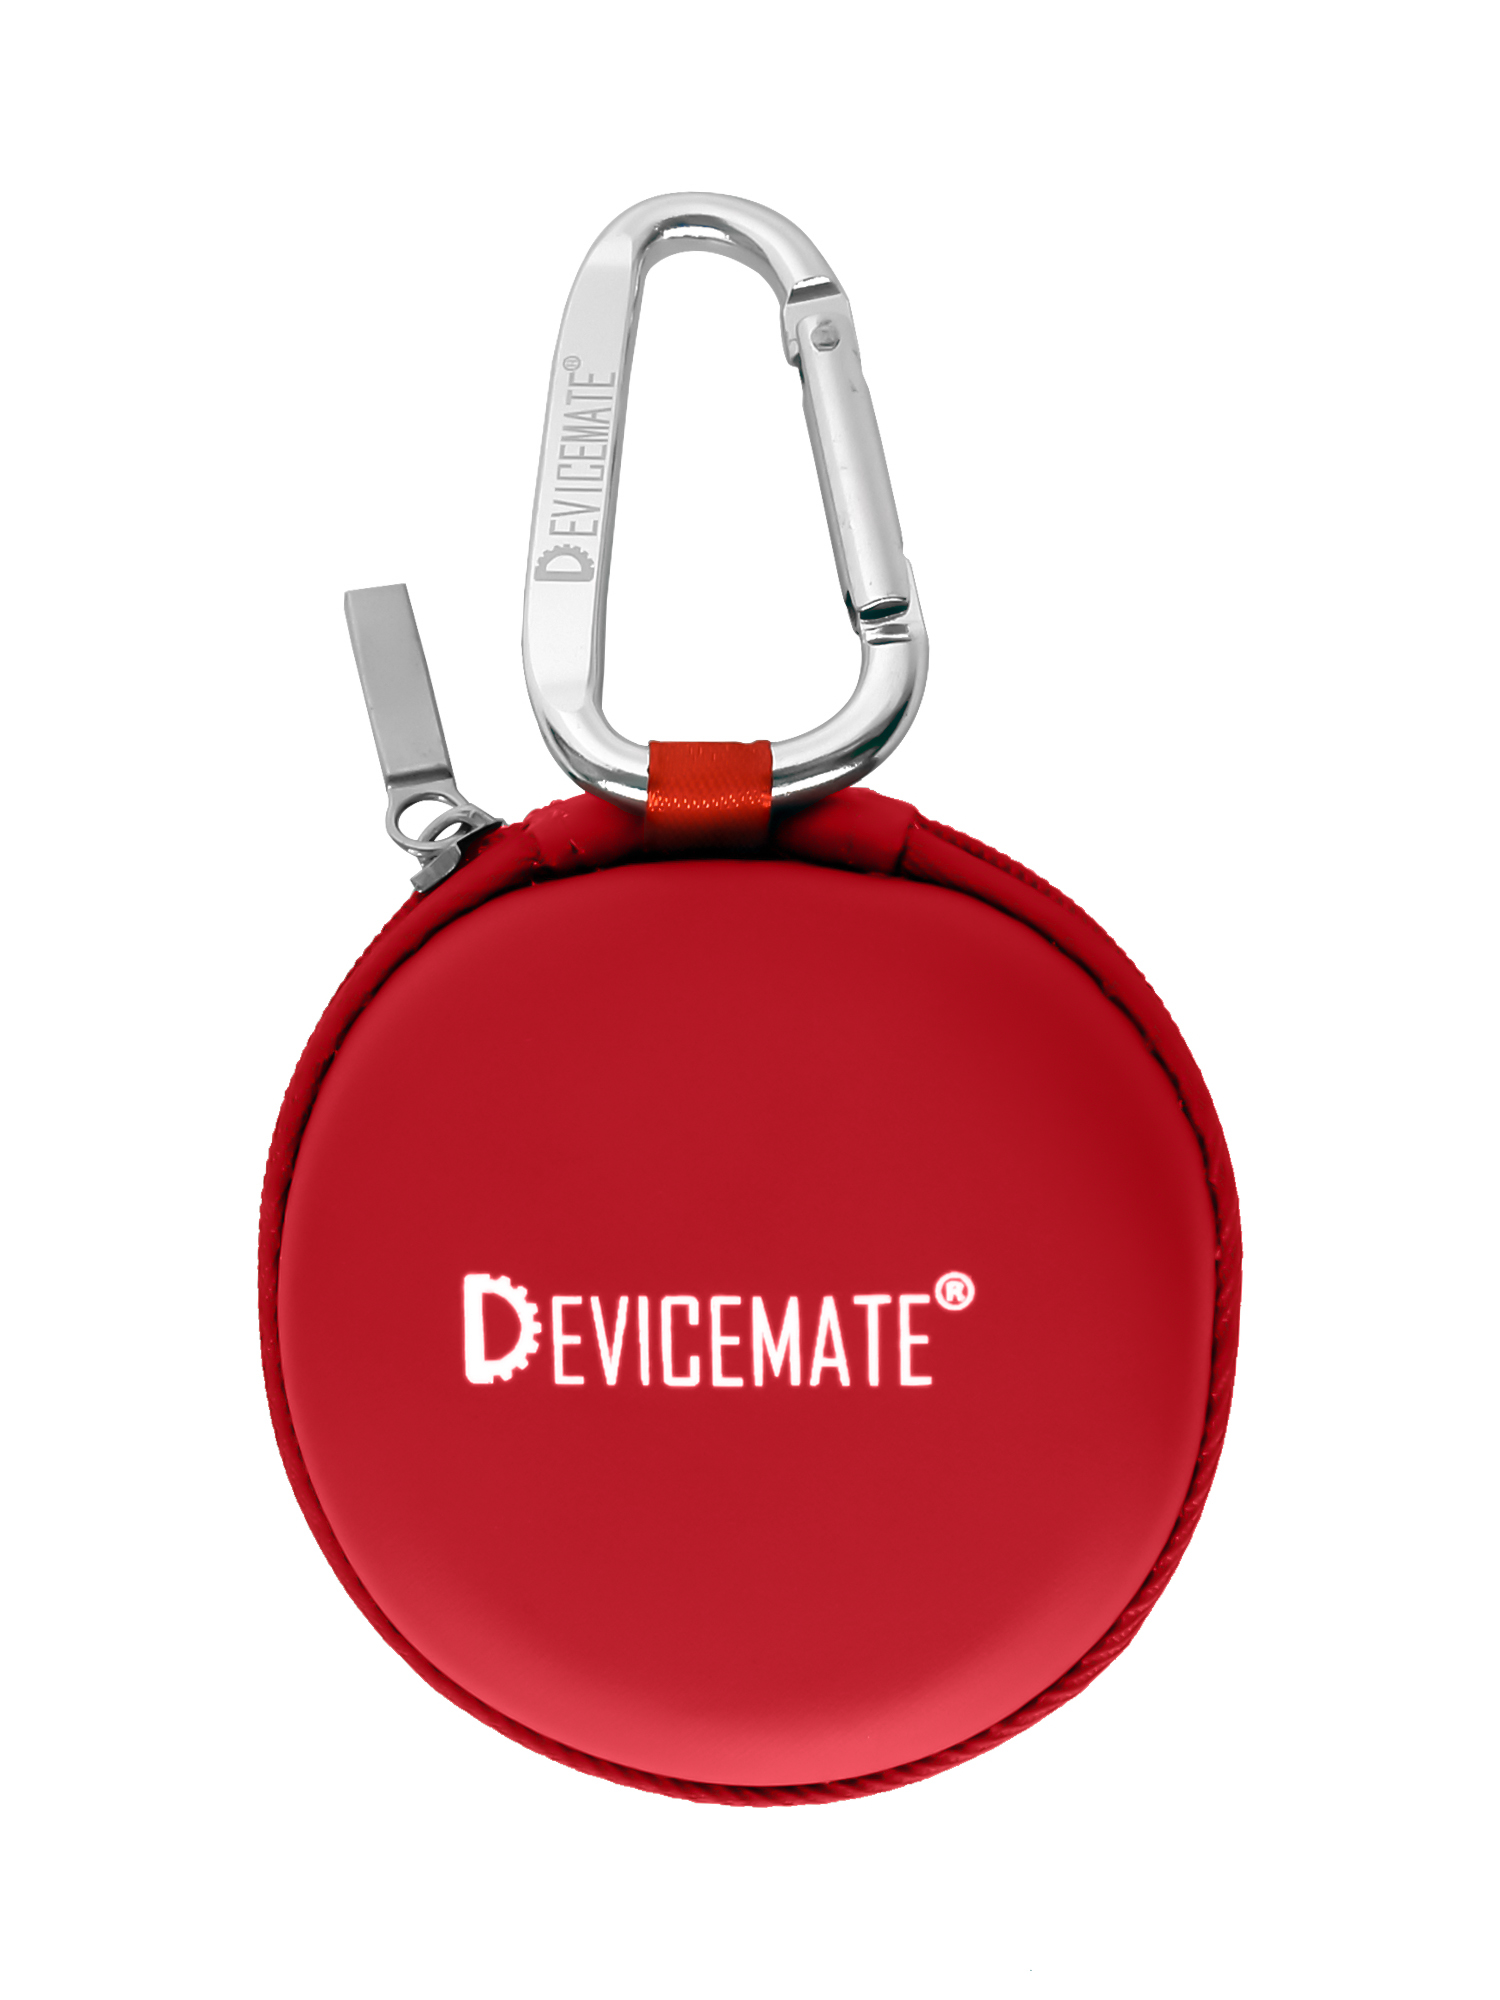 Devicemate SD 455-BRD Earphones w/mic for iPhone [Buc Red] Case